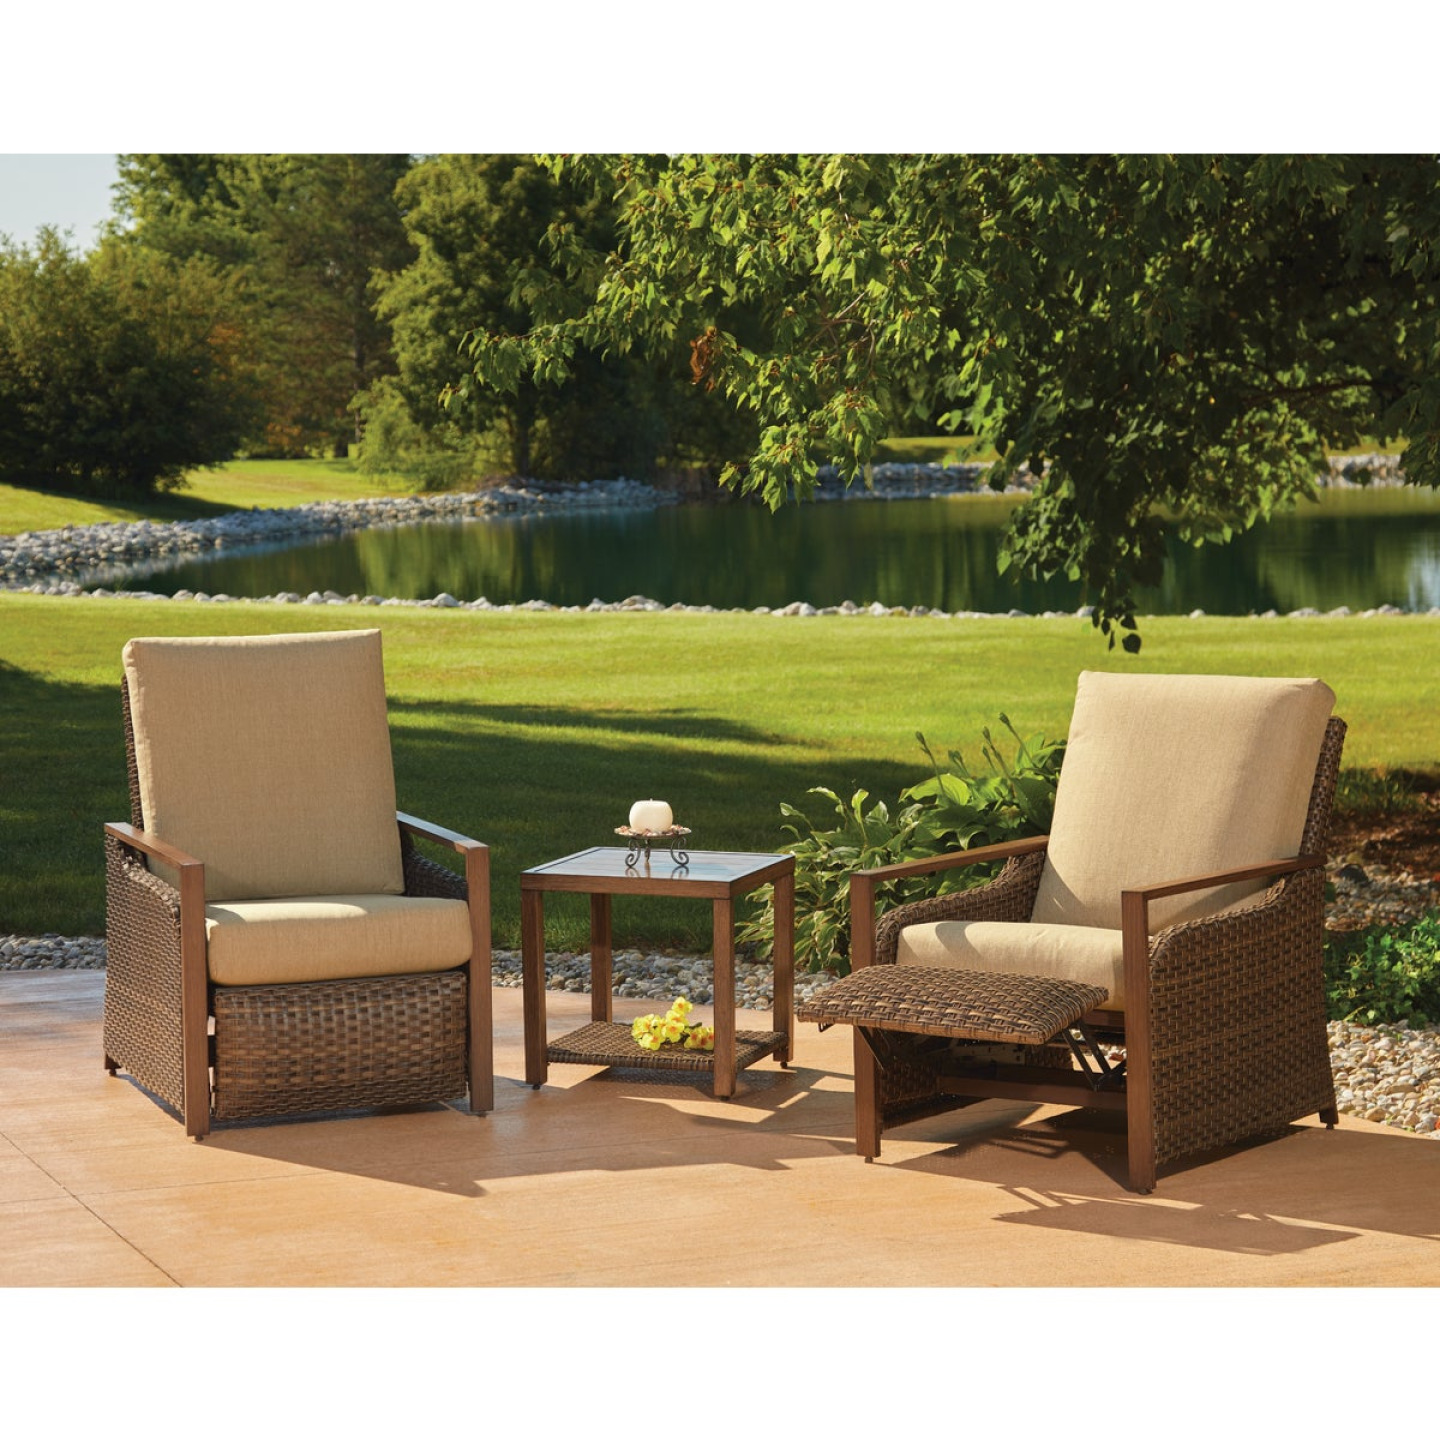 Pacific Casual Quincy 3-Piece Aluminum Reclining Chat Set Image 3